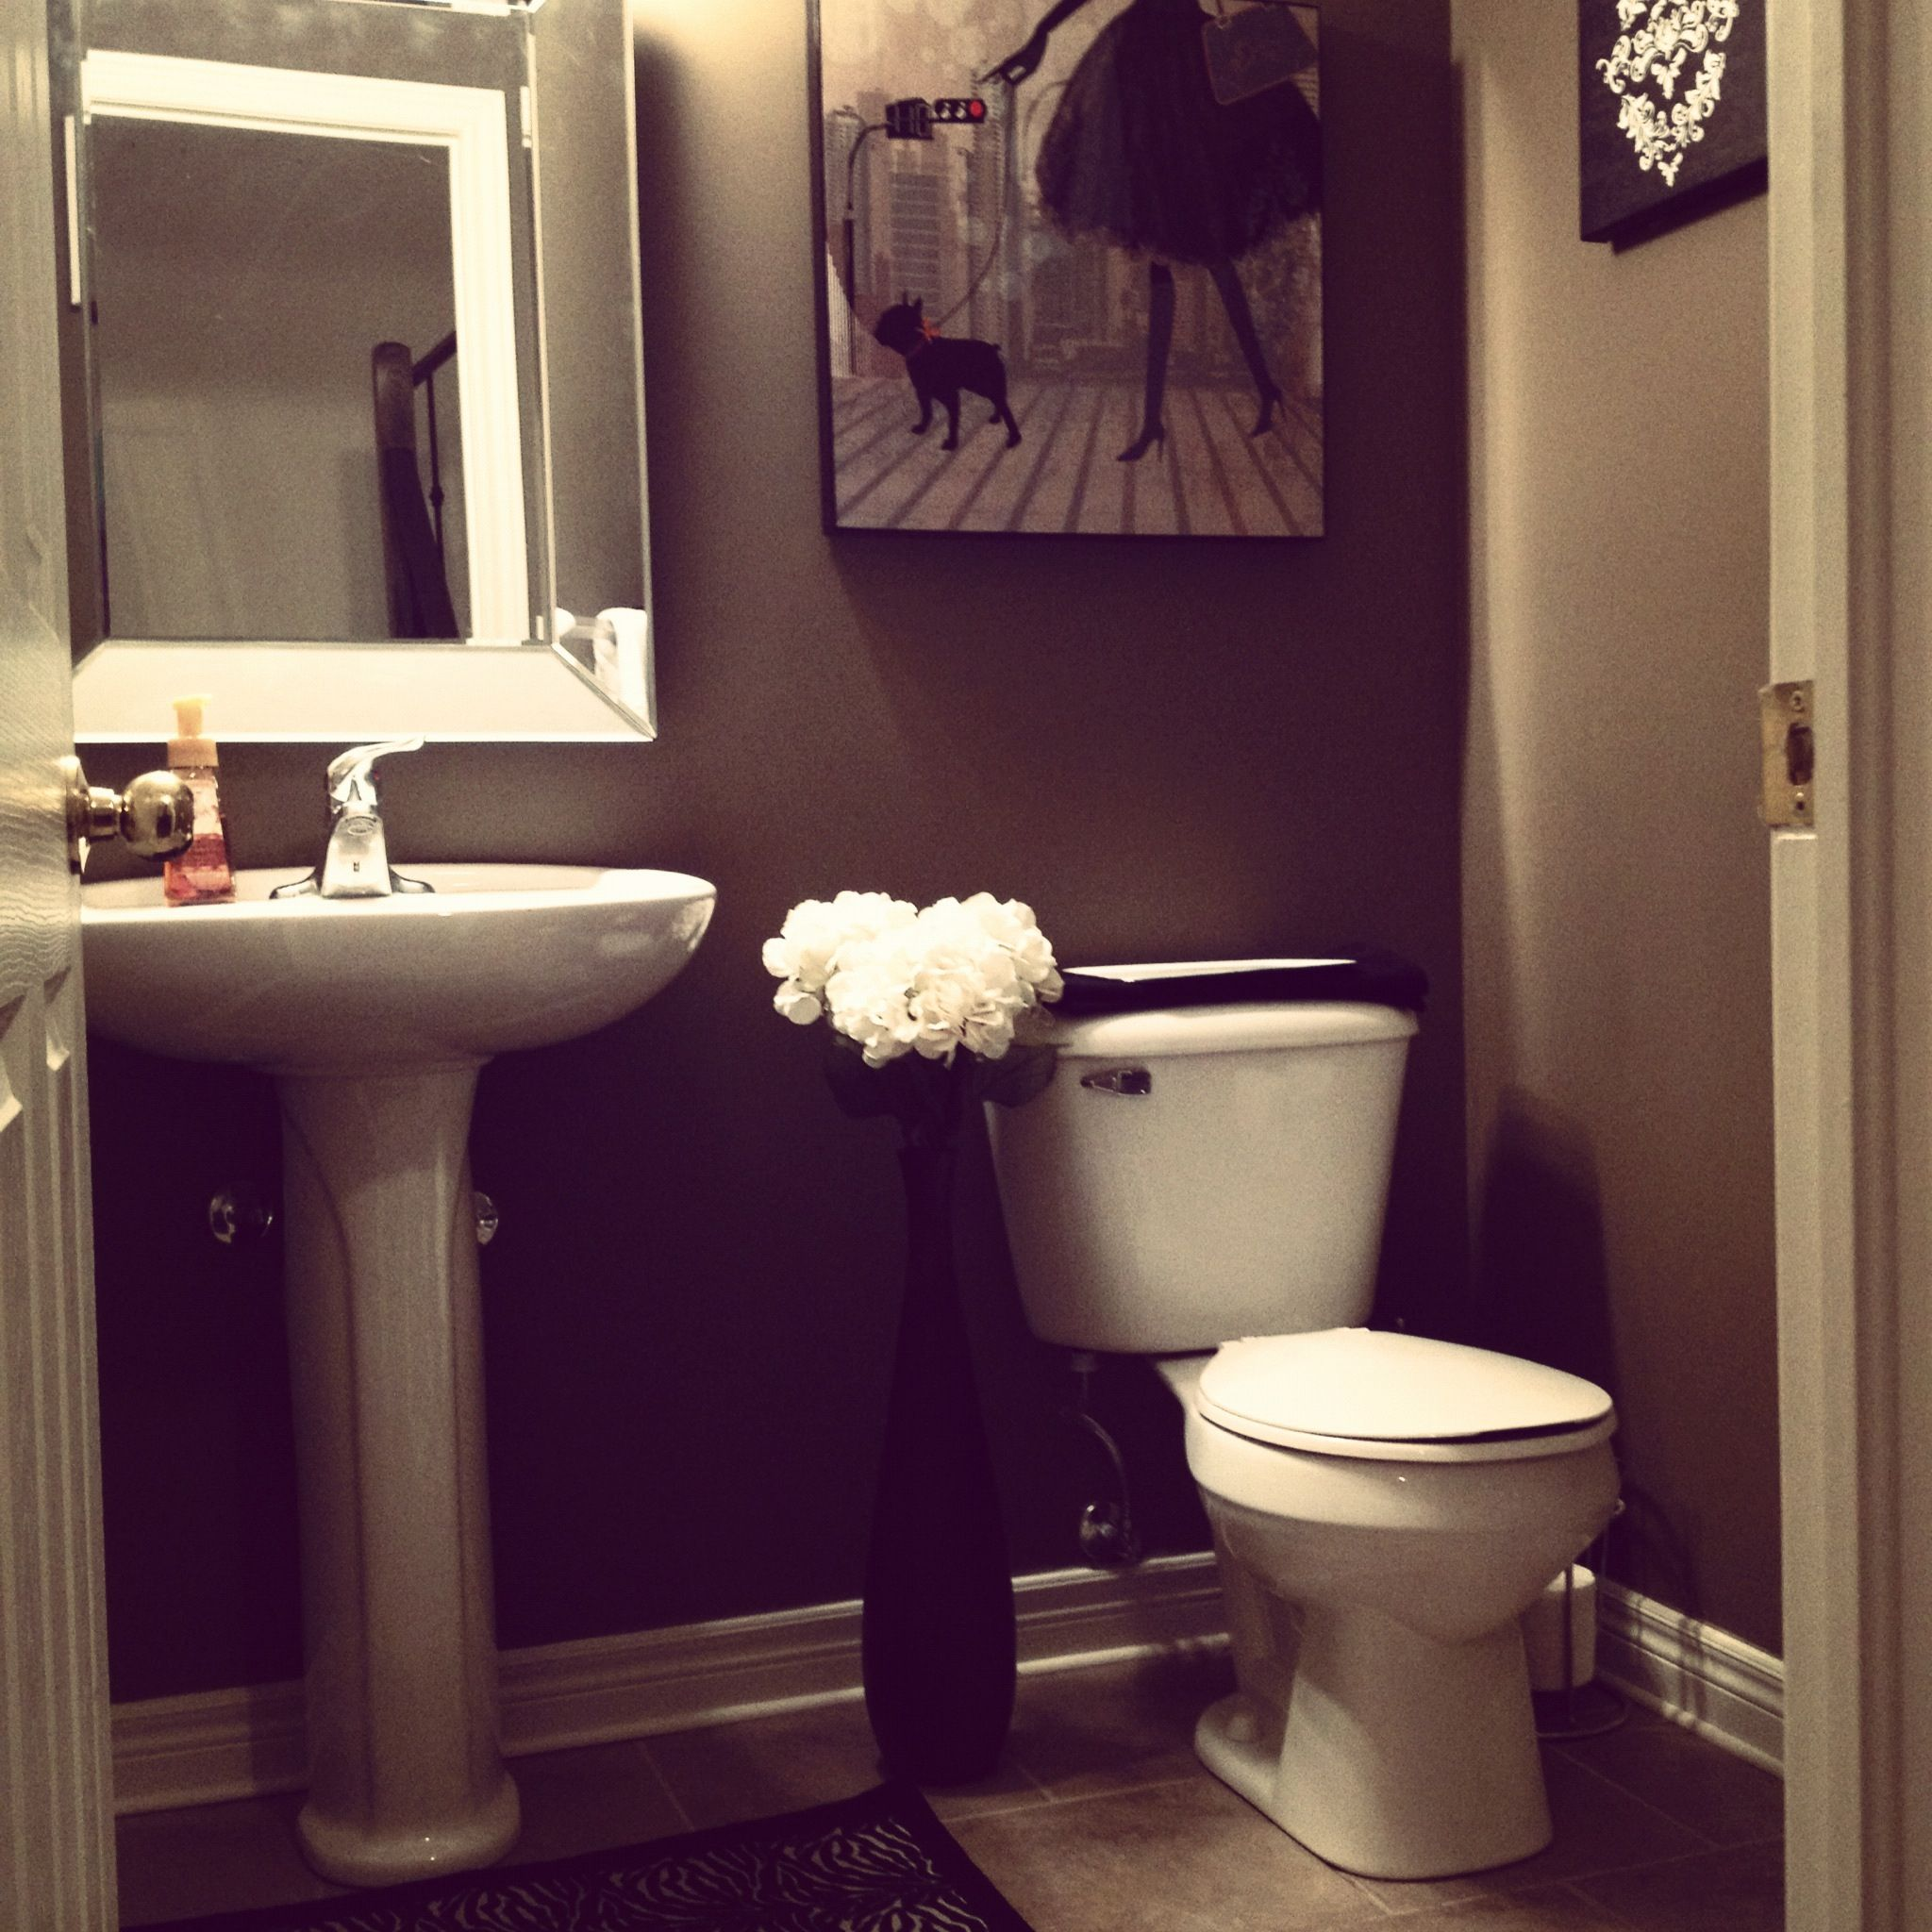 Paris bathroom decorating ideas - Evening In Paris Themed Powder Room